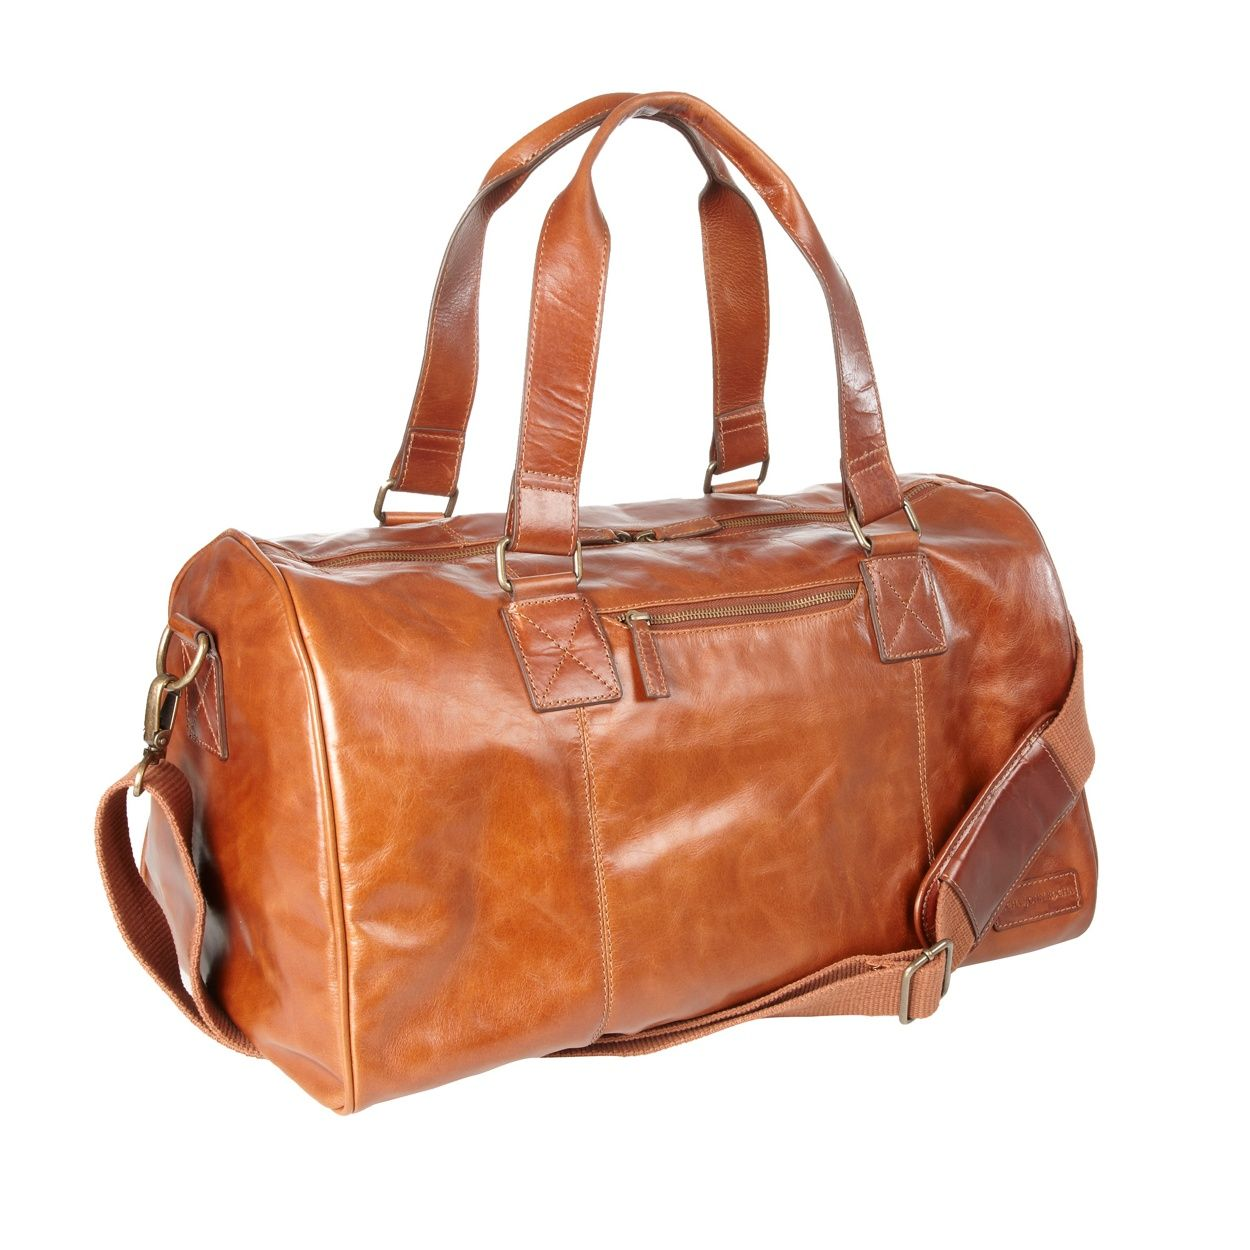 Mens leather gloves at debenhams - John Rocha Designer Tan Leather Holdall At Debenhams Com